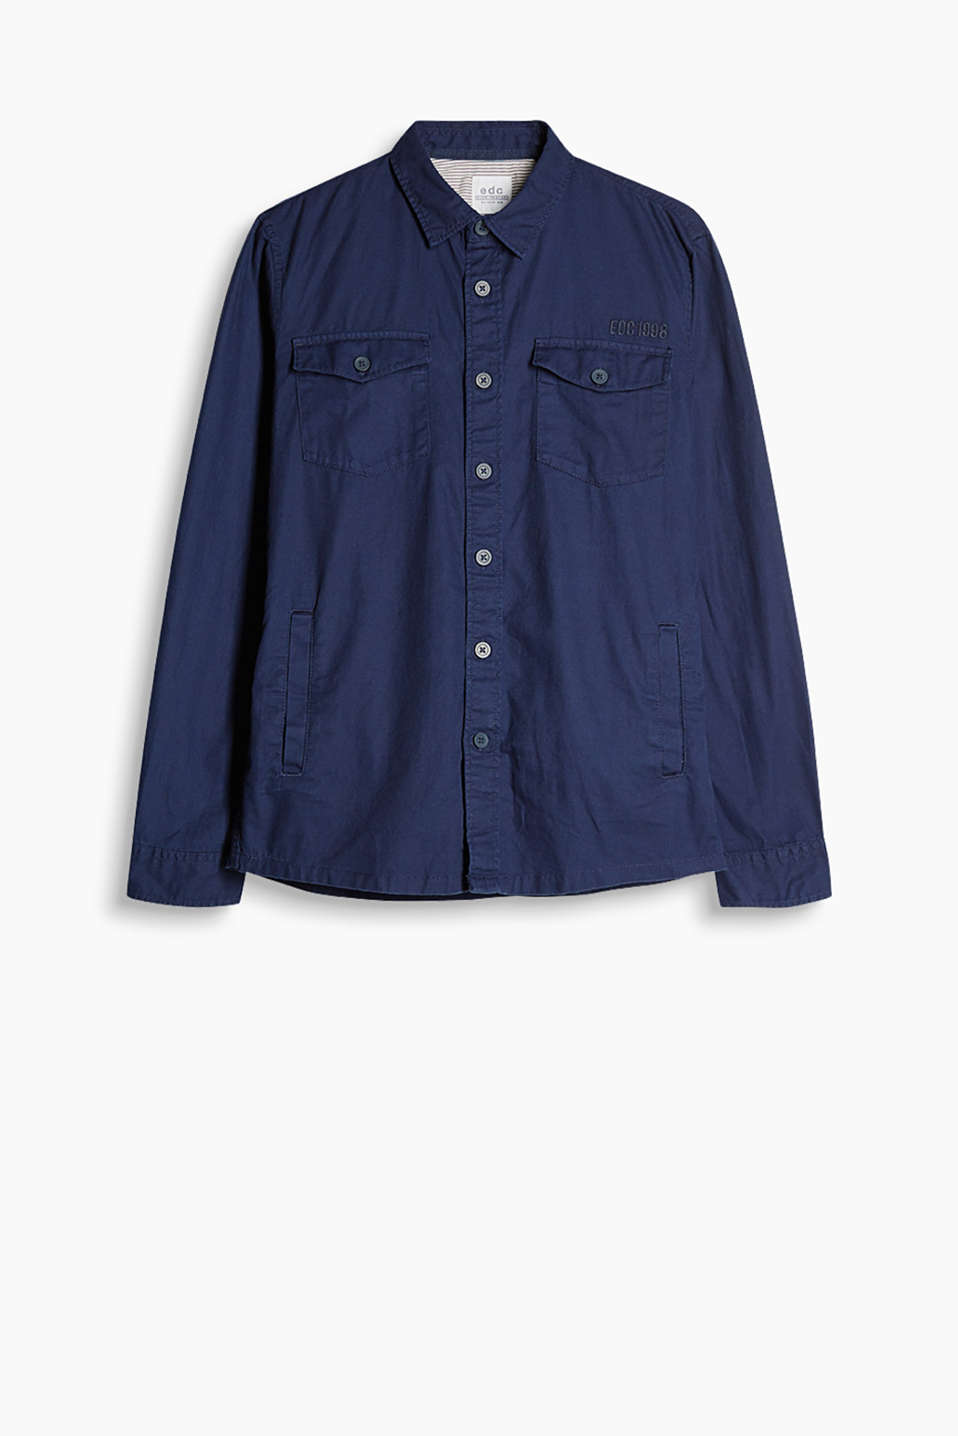 Robust shirt with chest pockets, slit pockets, and print on the back in a utility style